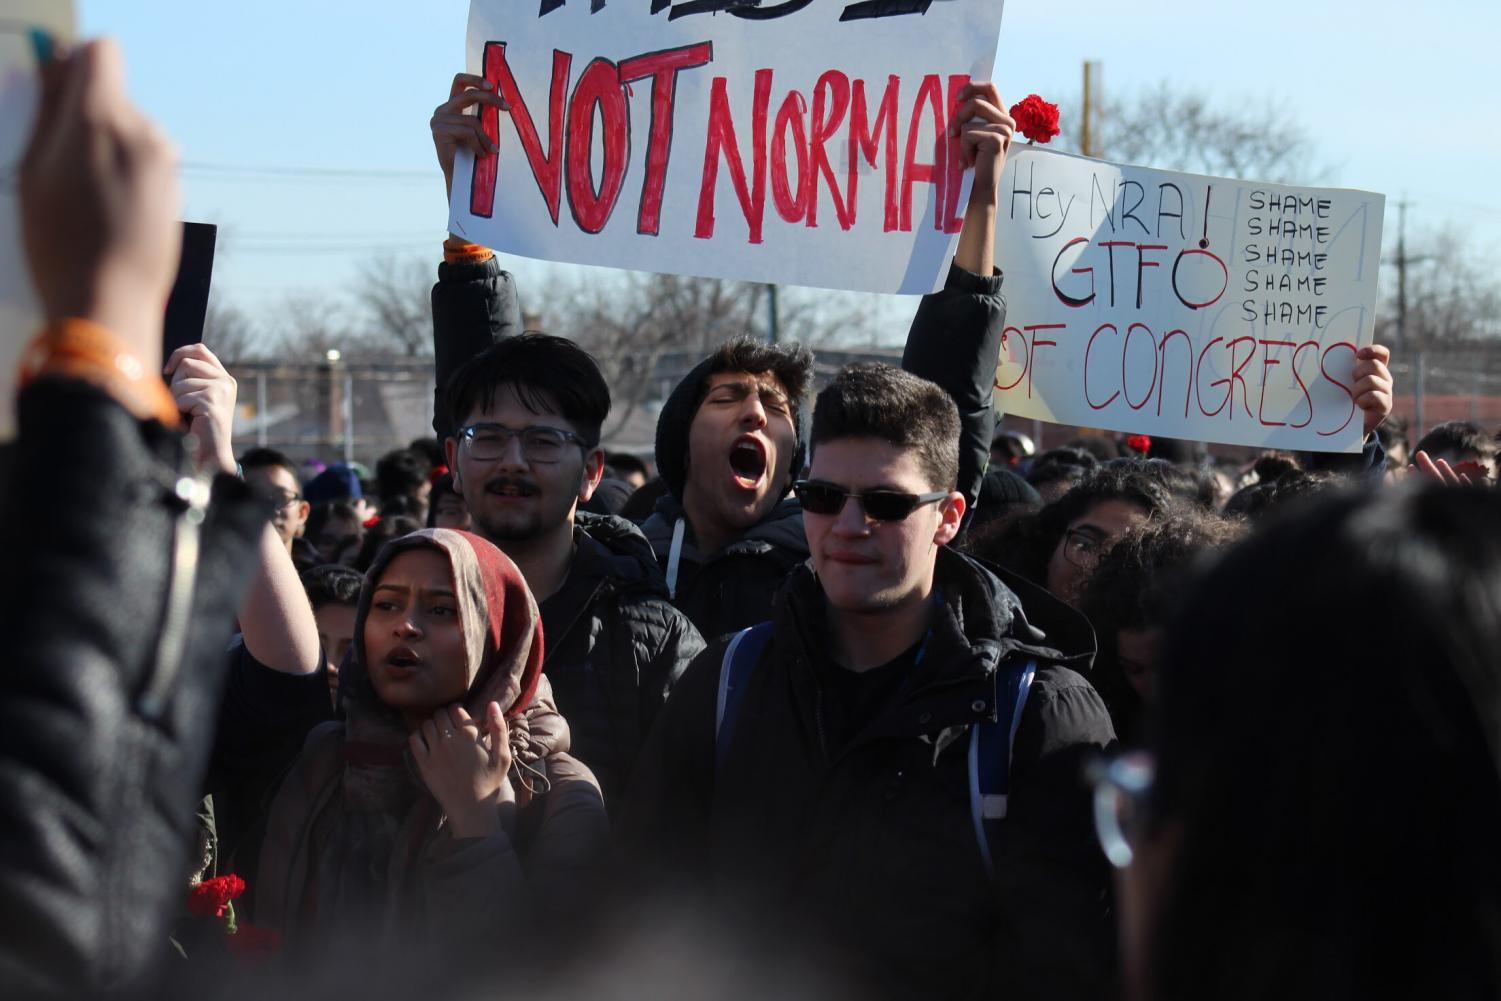 Francis+Lewis+alumnus+Joseph+Salvatore+holds+up+a+%22Not+Normal%22+sign+while+protesting+at+the+National+School+Walkout.